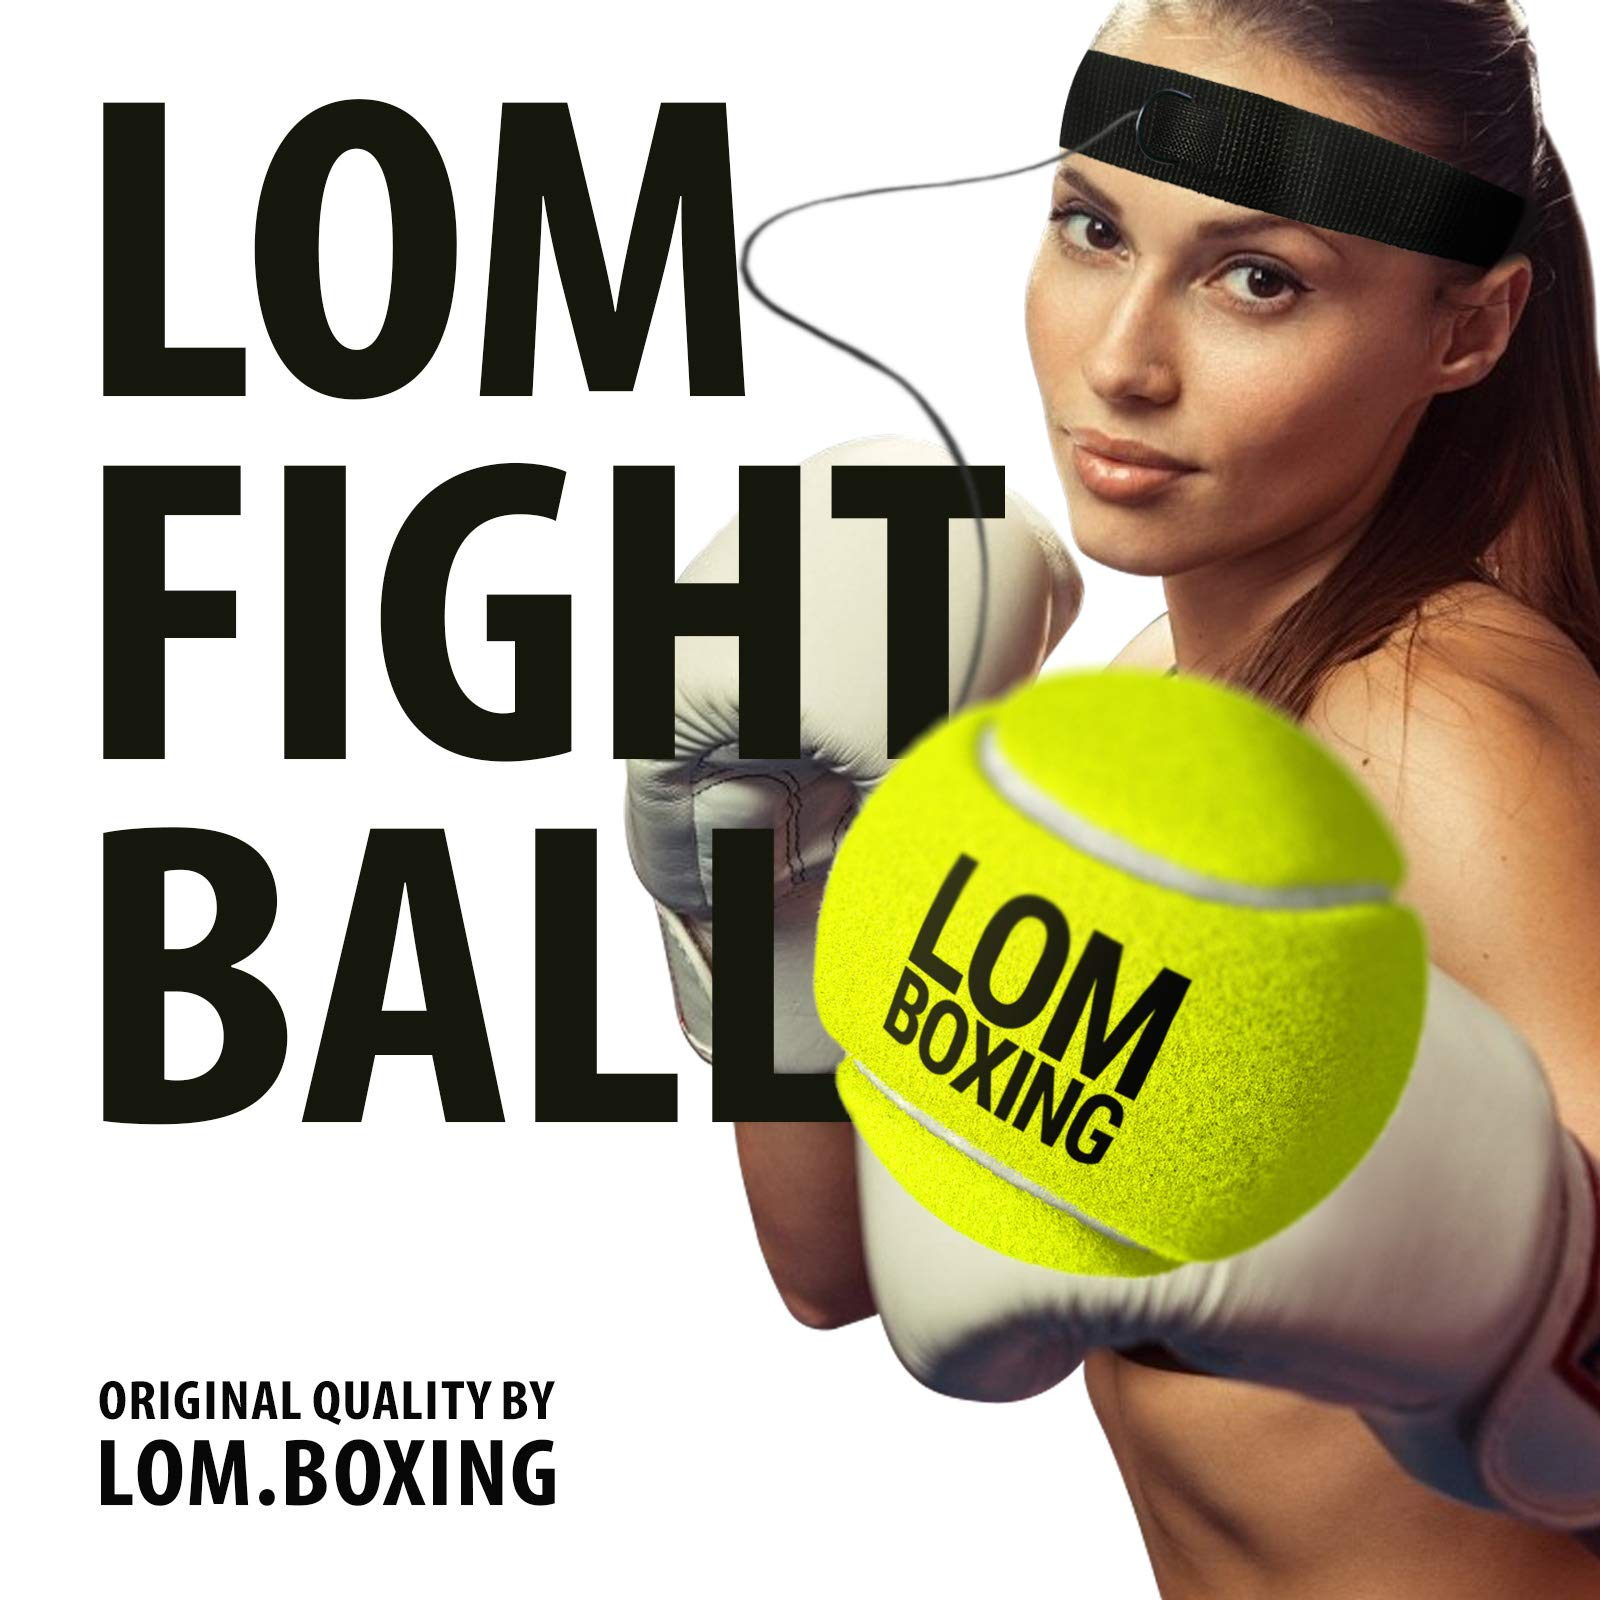 LOM Fight Ball Reflex, Boxing Ball, Red Blue Design, Boxing Equipment, Trainer for Workout and Fitness, Boxing Headband with String and Boxing Tennis Ball for speed punch, Punching Ball for All Ages